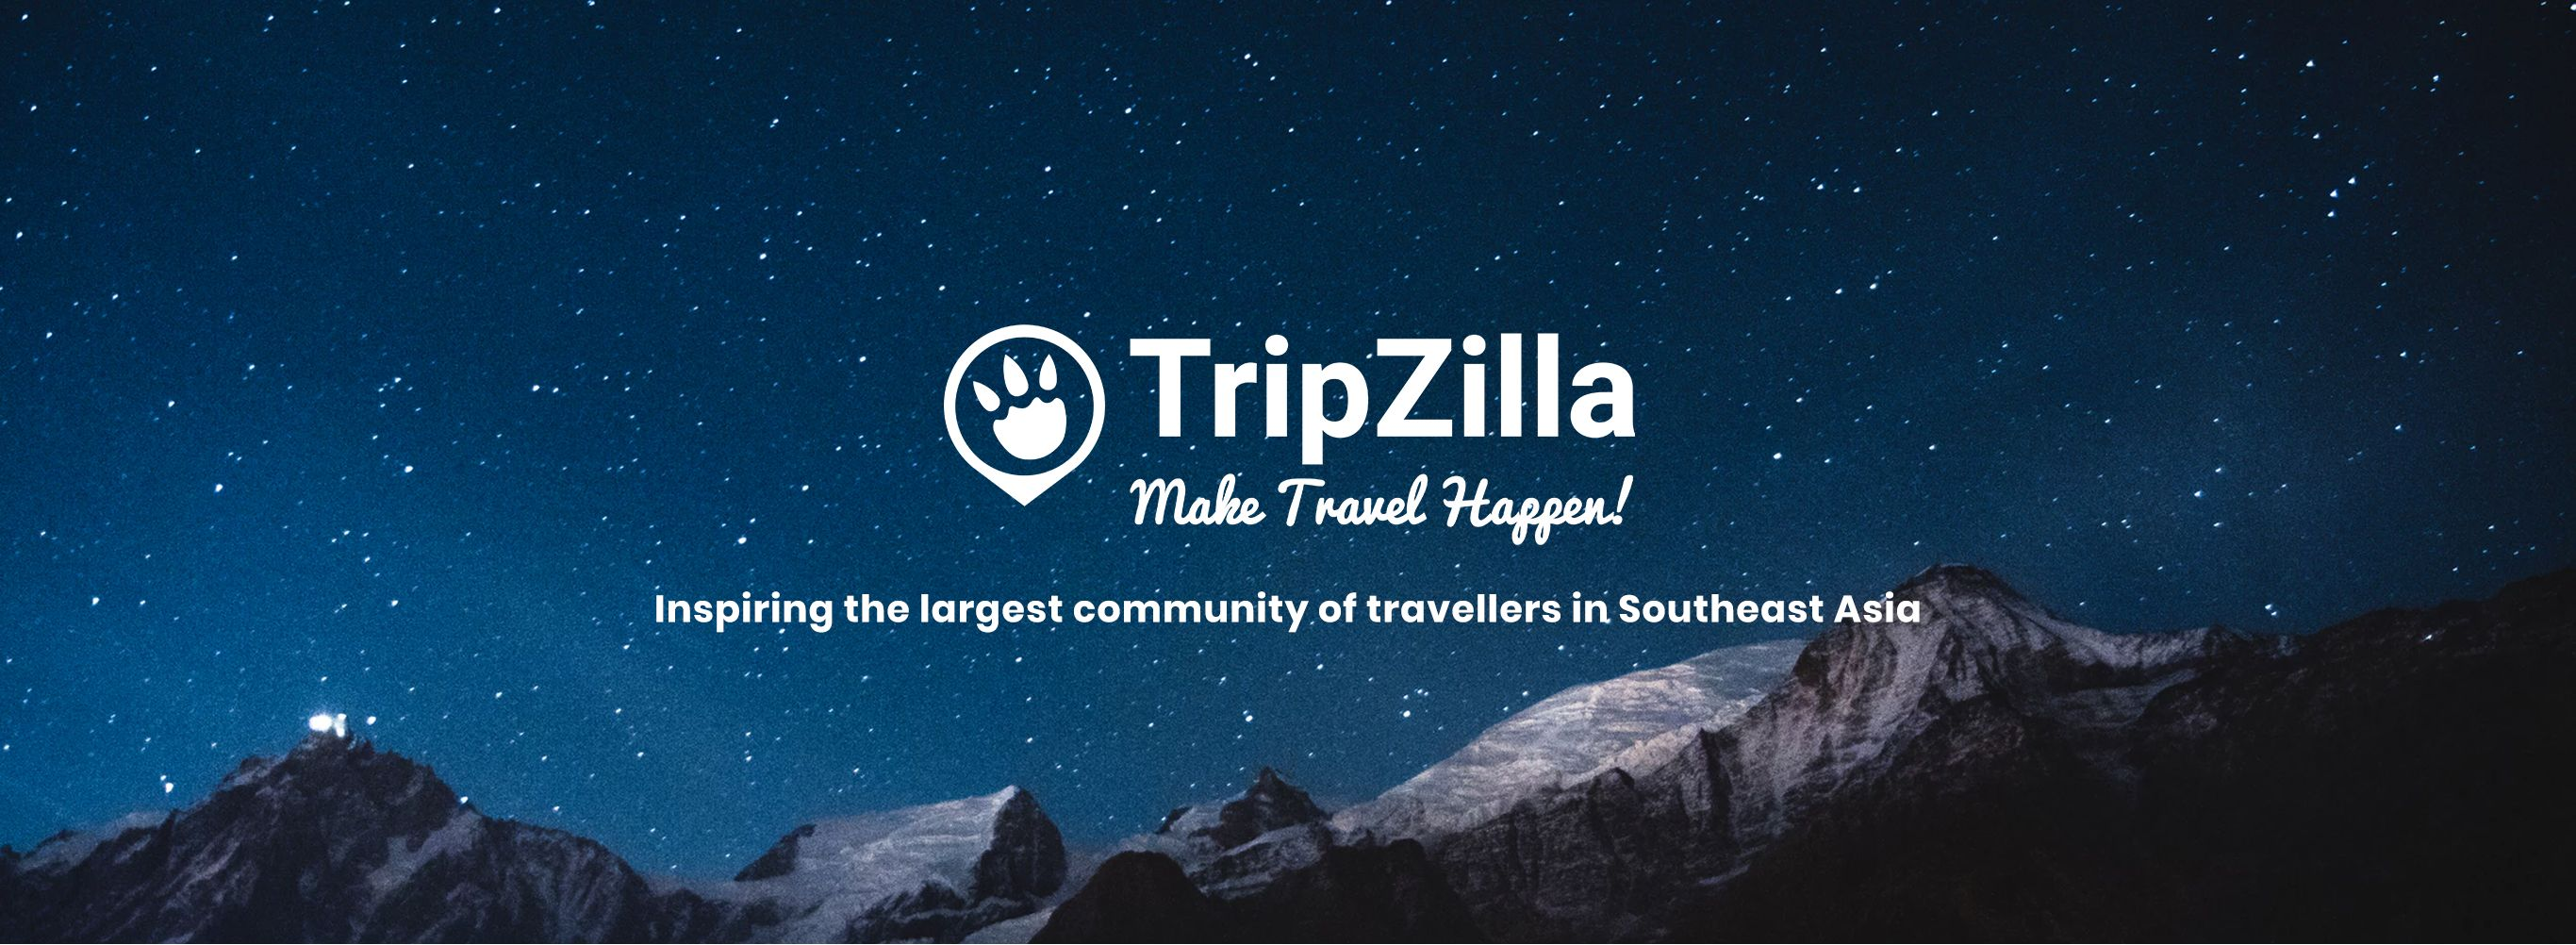 tripzilla-inspiring-the-largest-community-of-travellers-in-southeast-asia